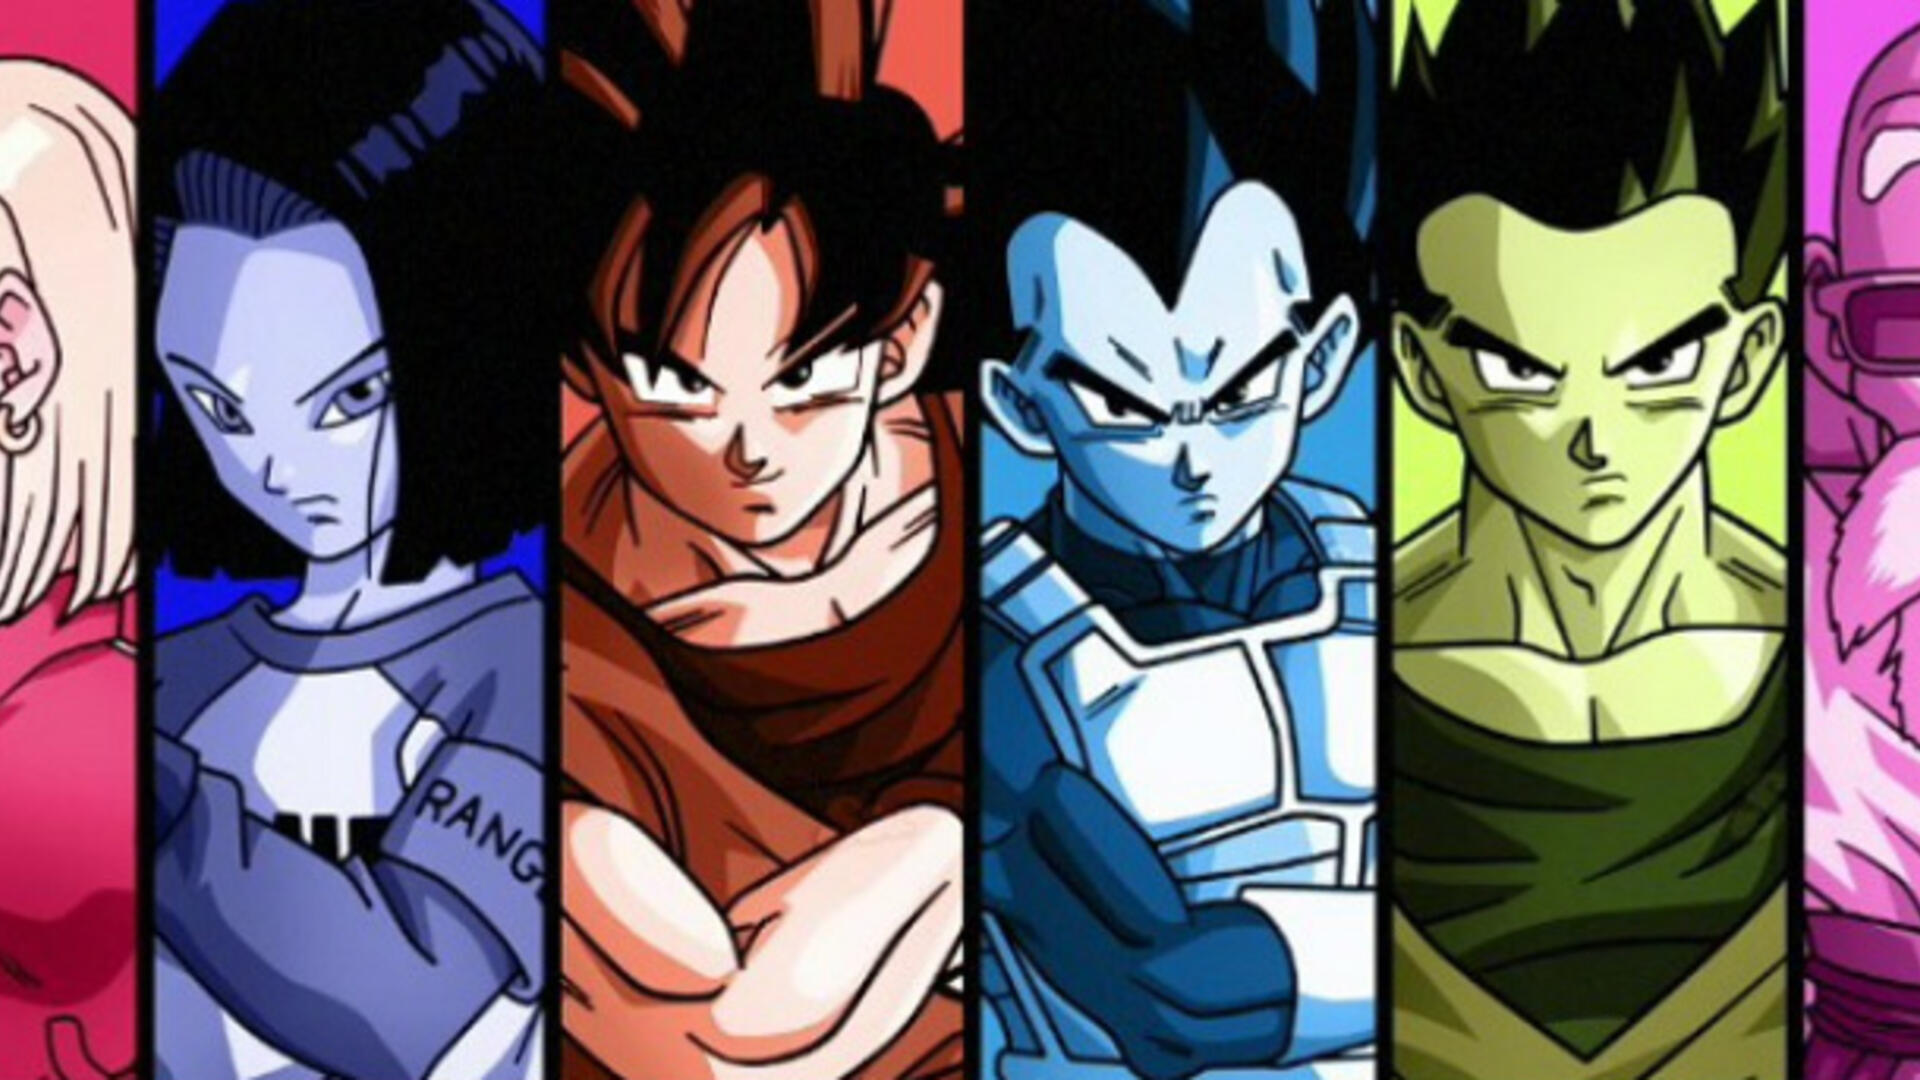 Dragon Ball Fighters From Arc System Works Leaked